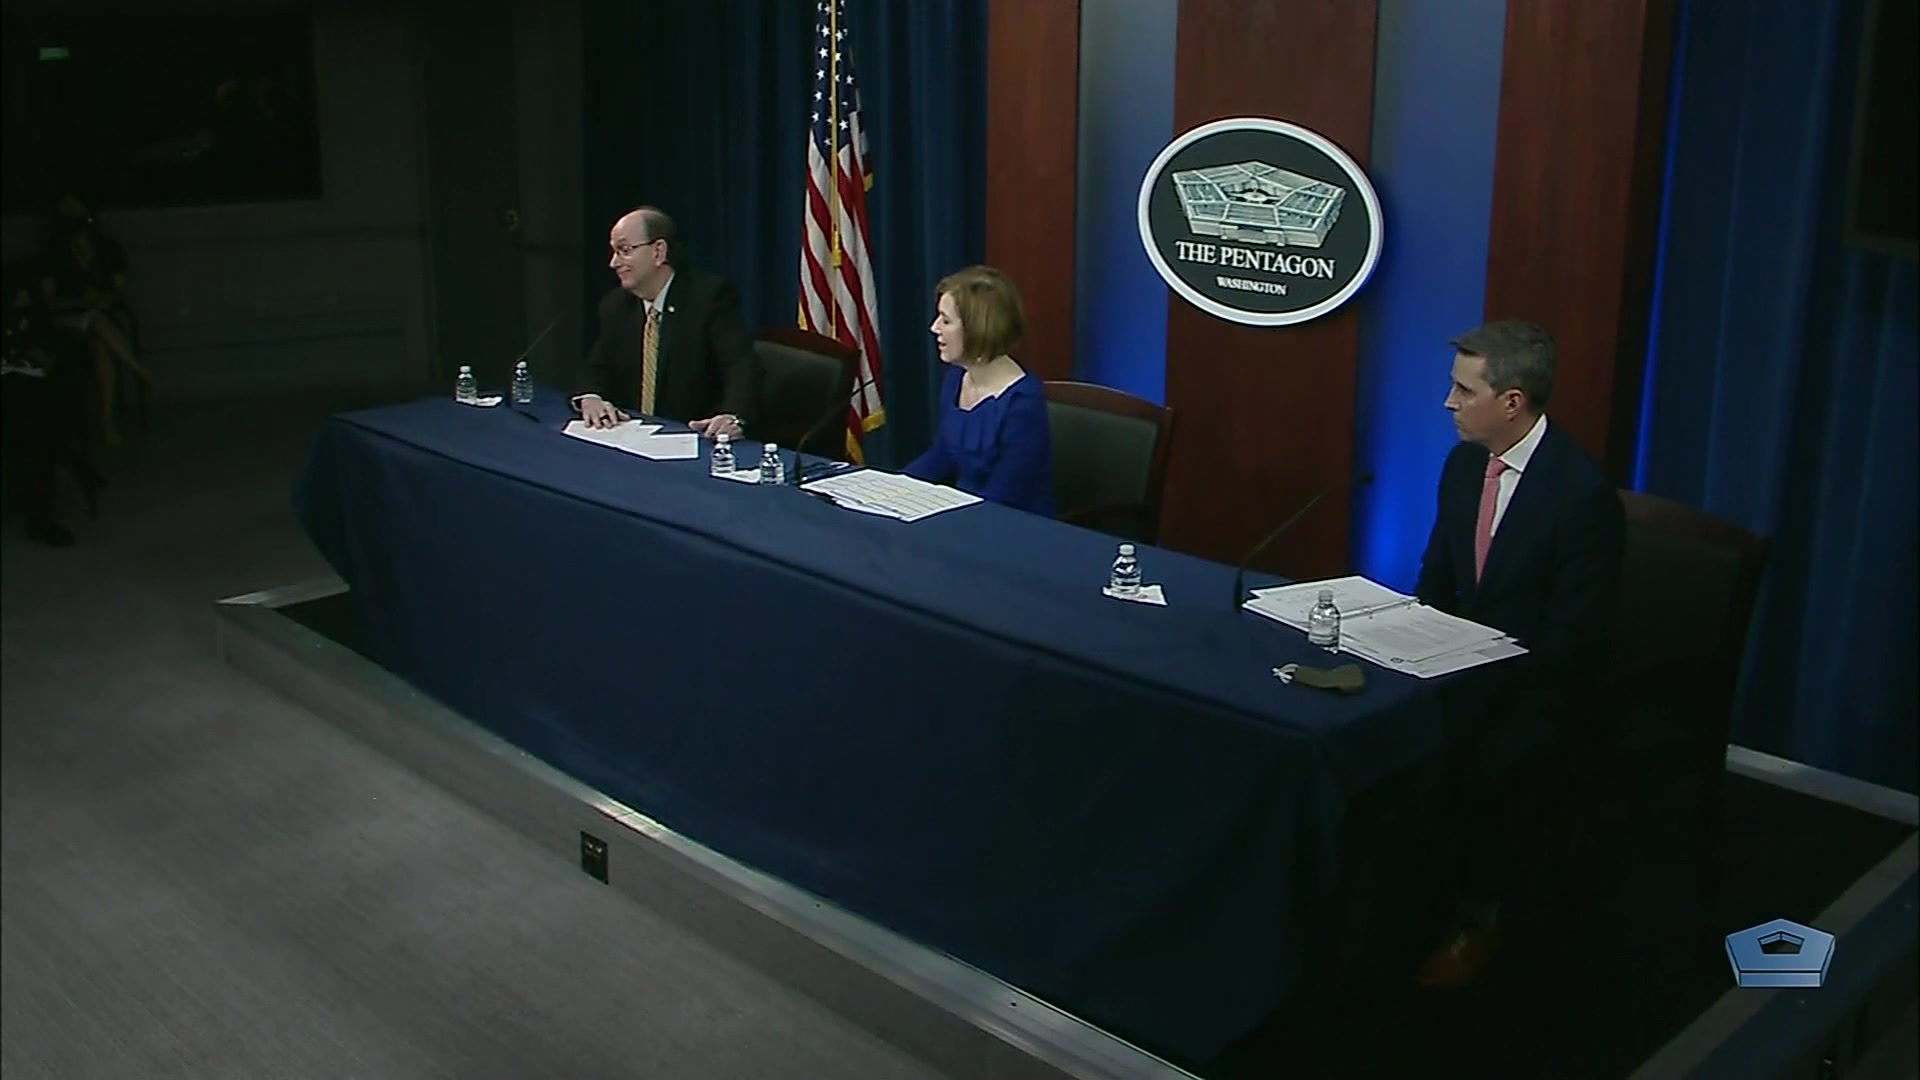 Jonathan Rath Hoffman, assistant to the secretary of defense for public affairs; Matthew Donovan, undersecretary of defense for personnel and readiness; and Lisa W. Hershman, the Defense Department's chief management officer, take questions from reporters pertaining to COVID-19 at the Pentagon, May 26, 2020.